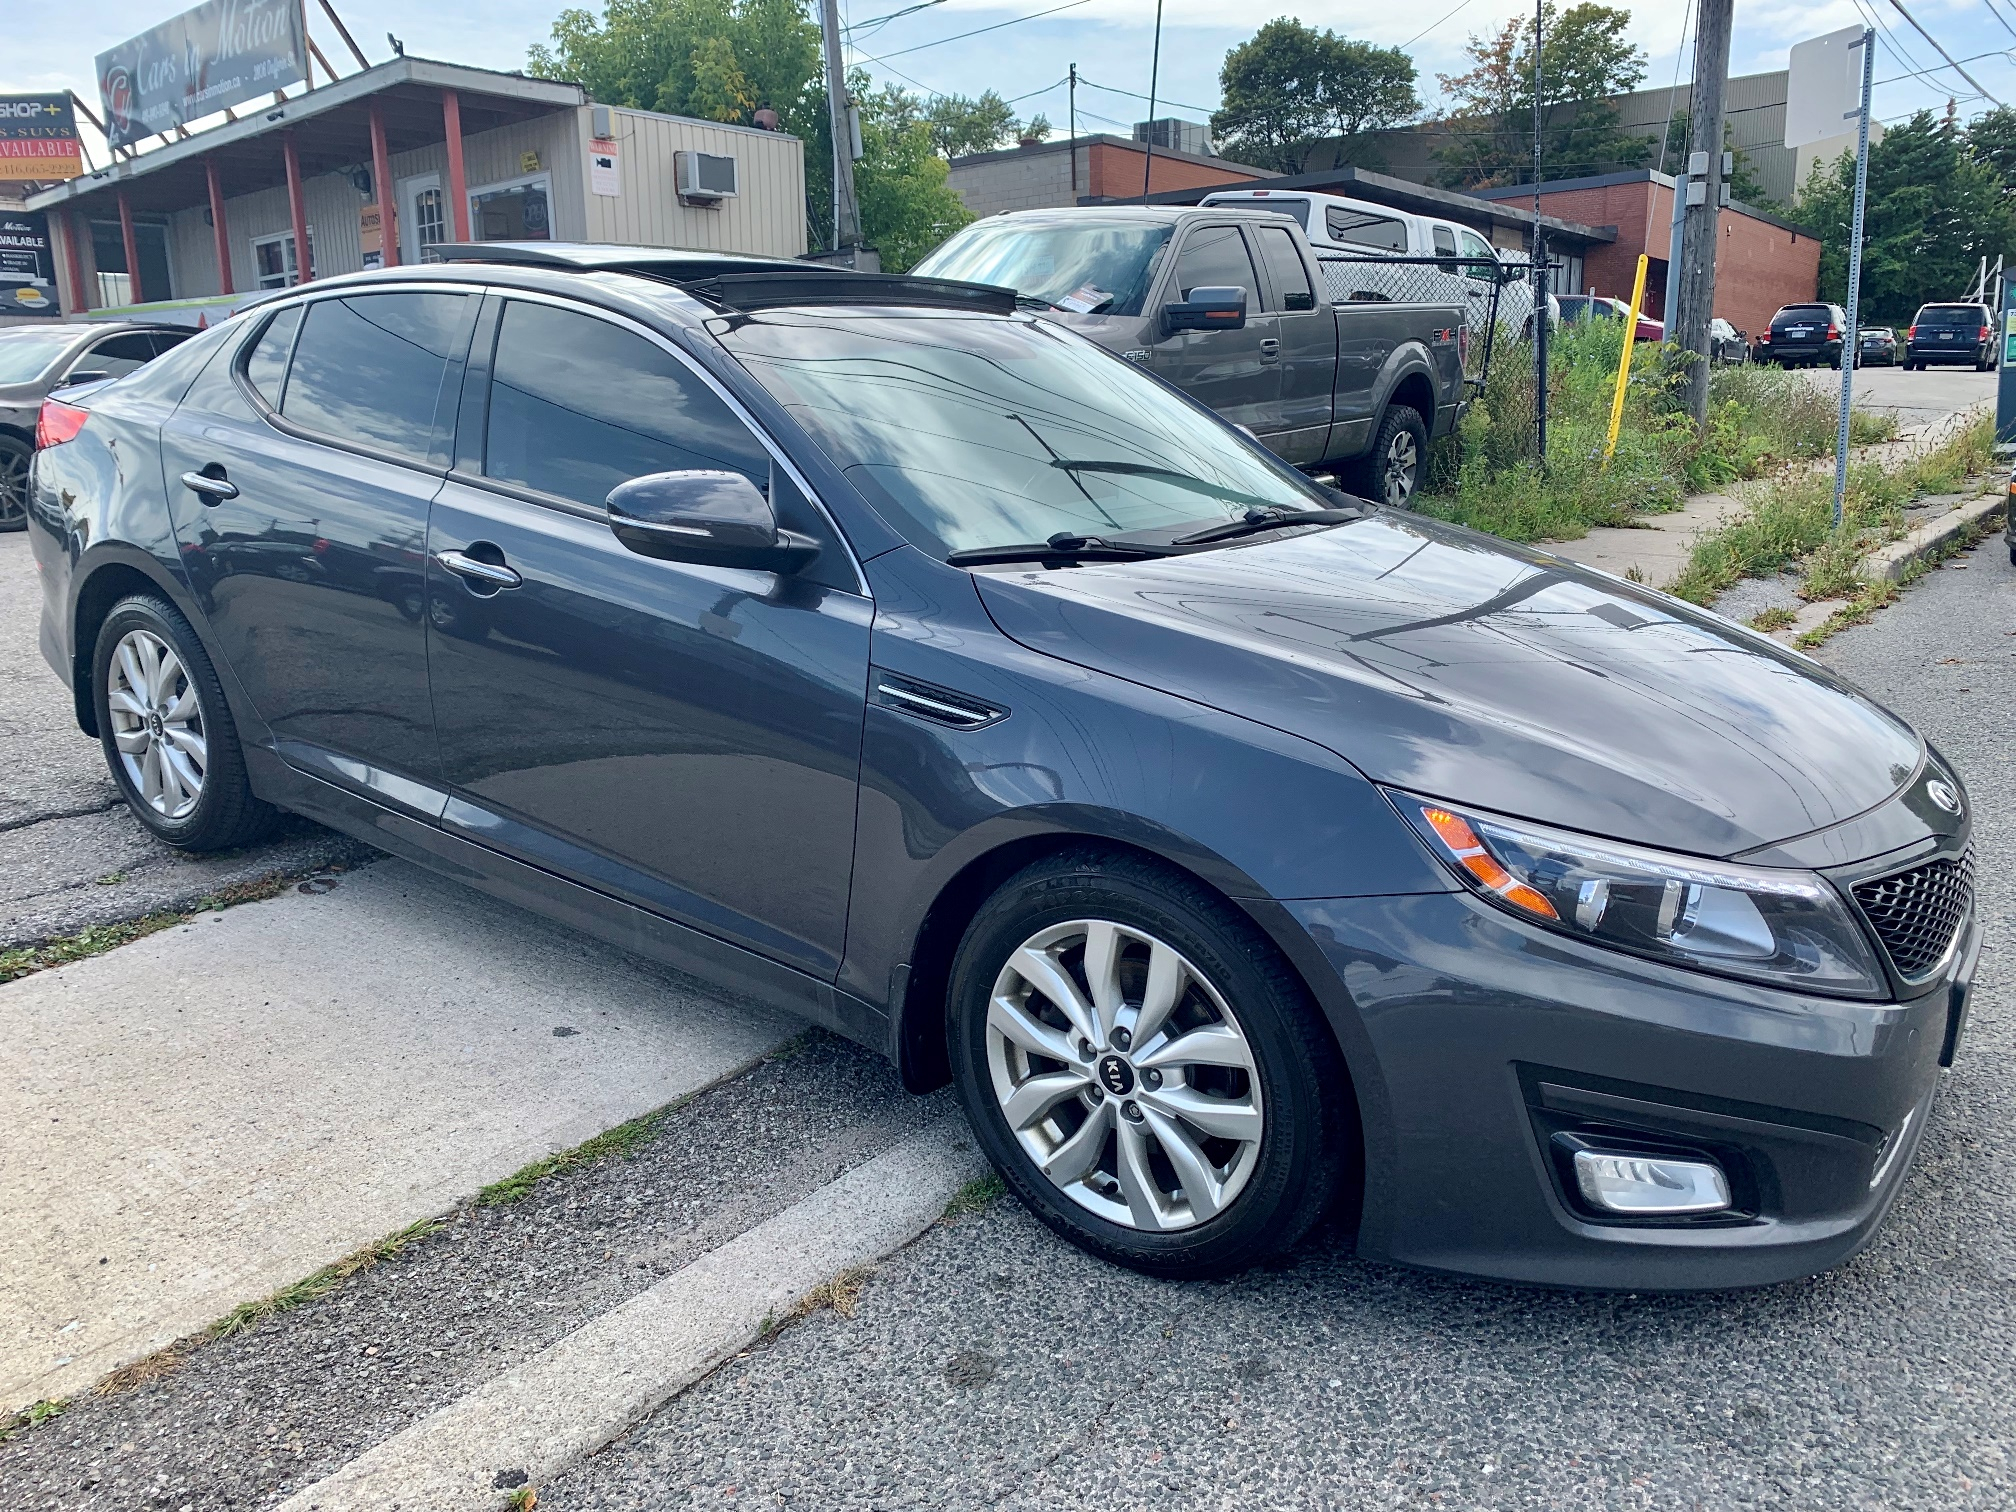 Kia Optima Ex Luxury 2015 | Nav | Rev Cam | Pano Roof - 2022 Kia Optima Engine 2.4 L 4-Cylinder